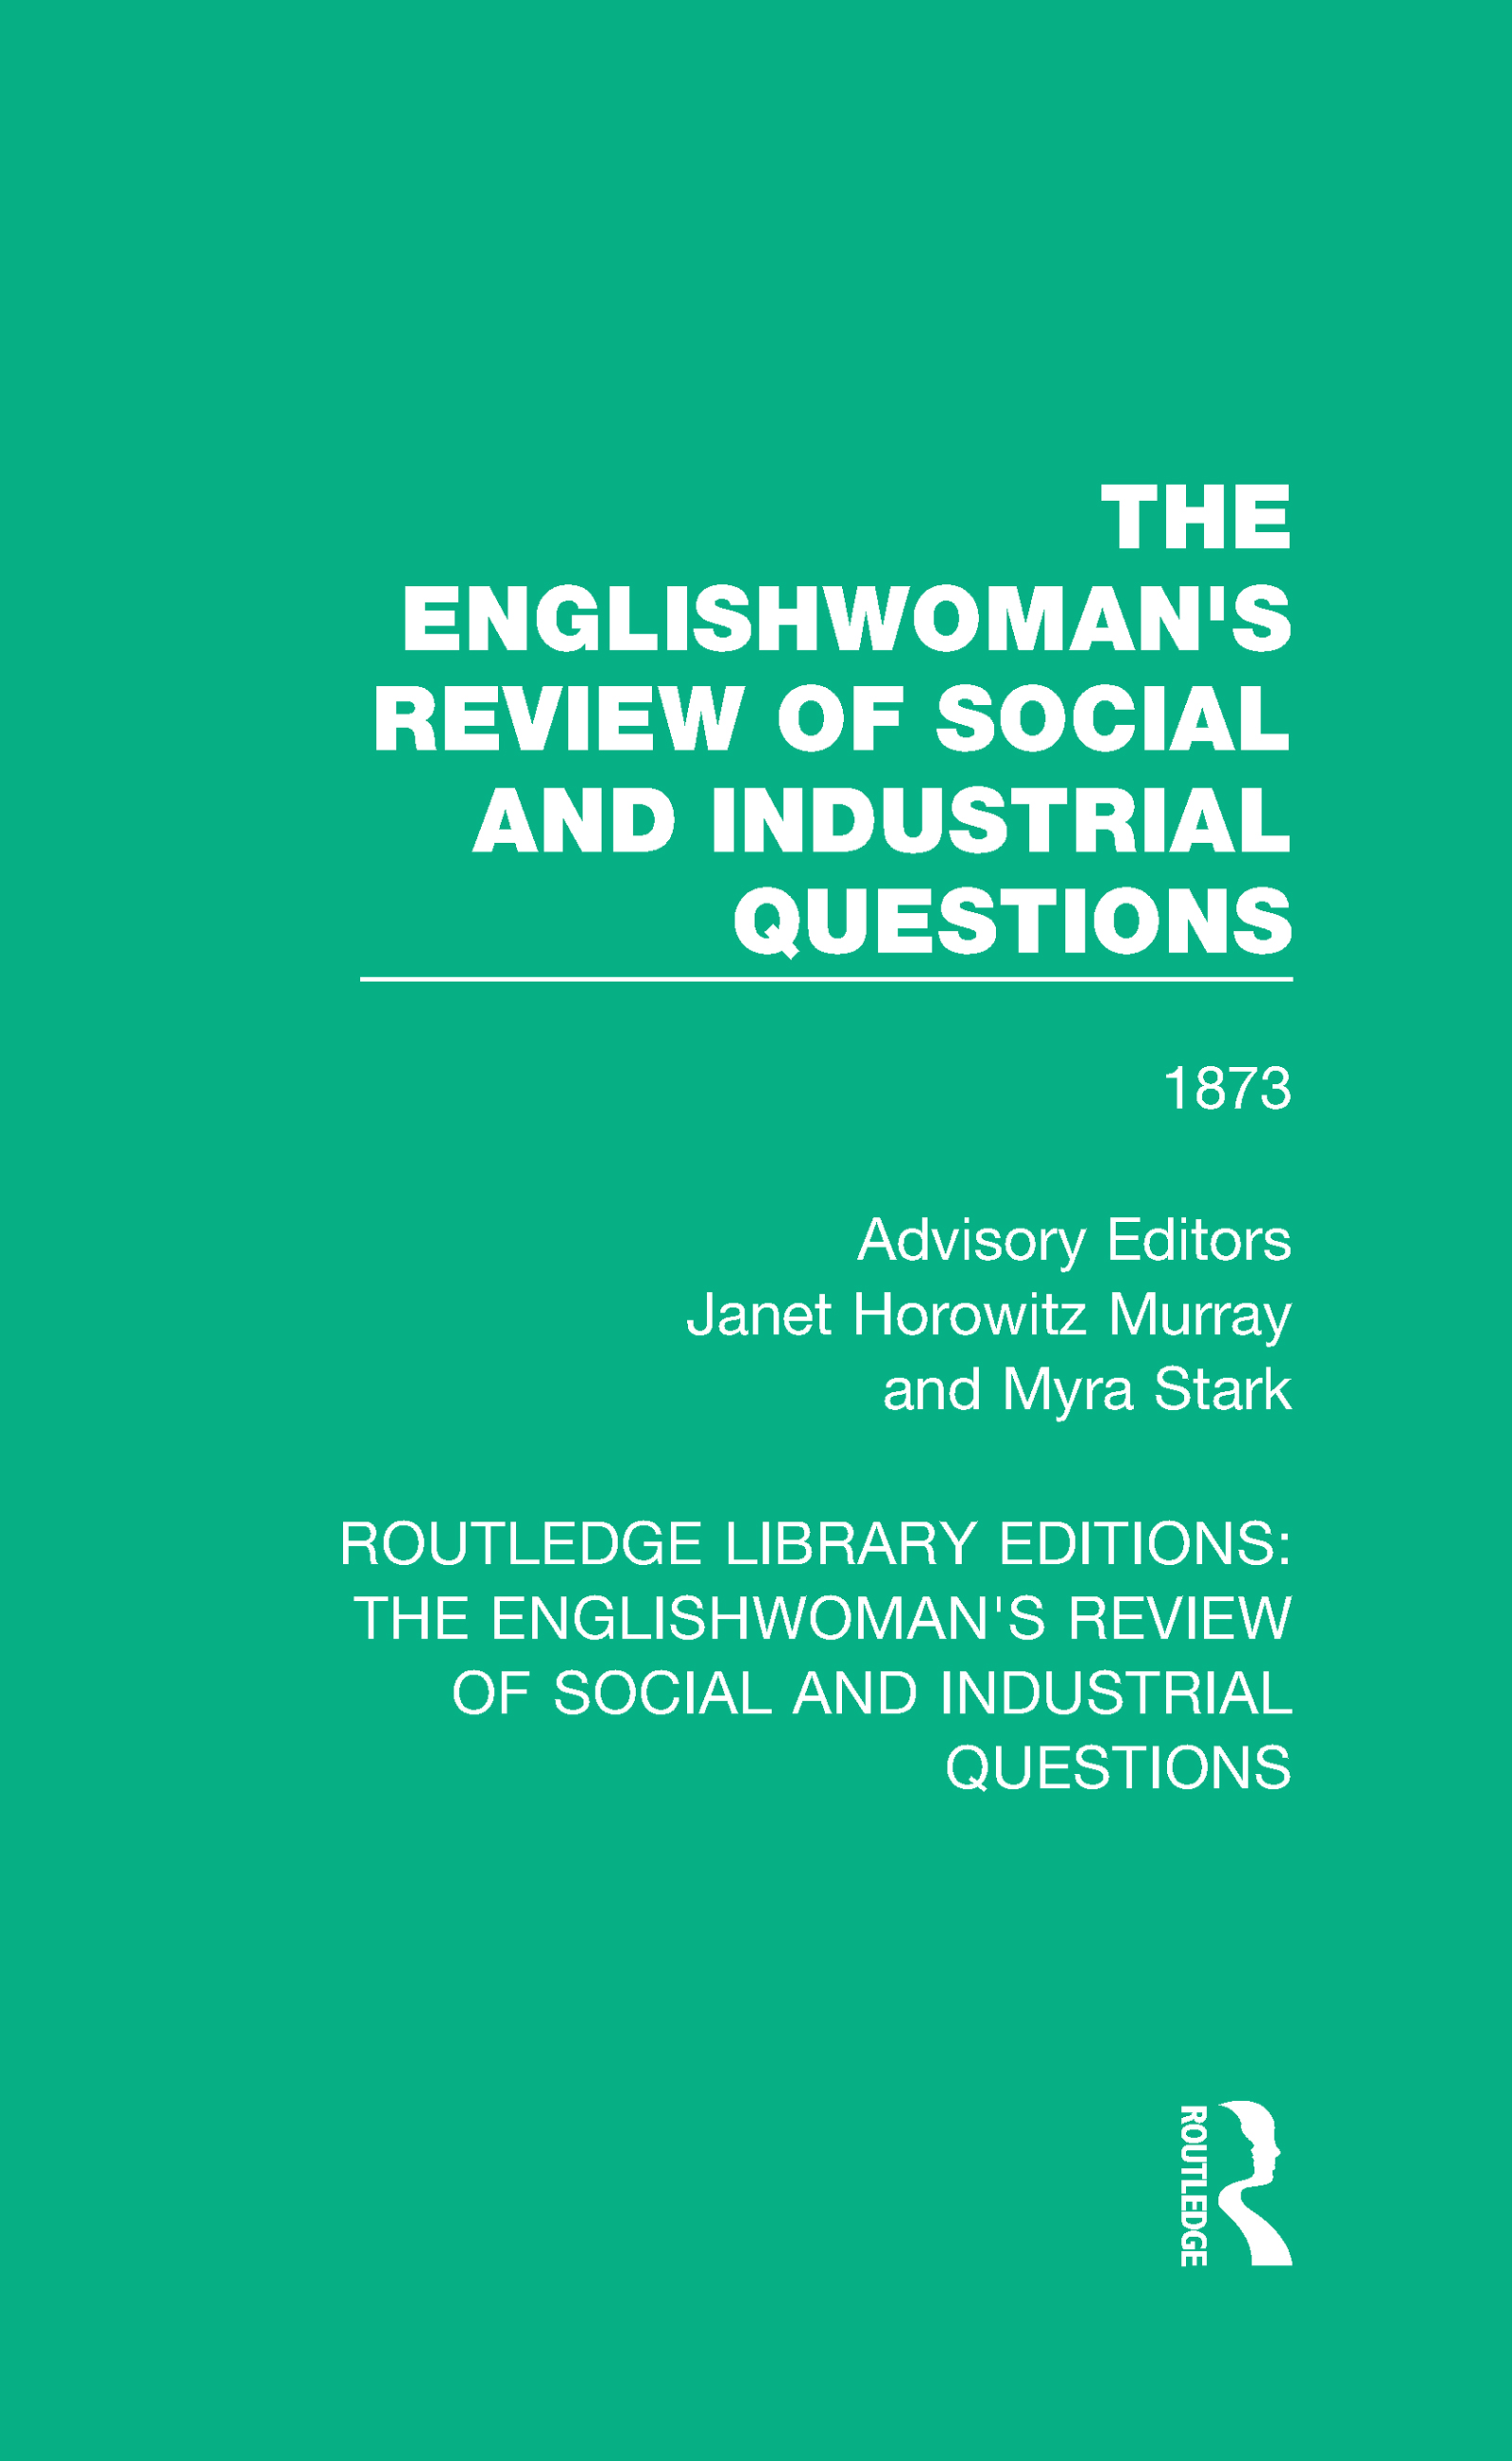 The Englishwoman's Review of Social and Industrial Questions: 1873 book cover